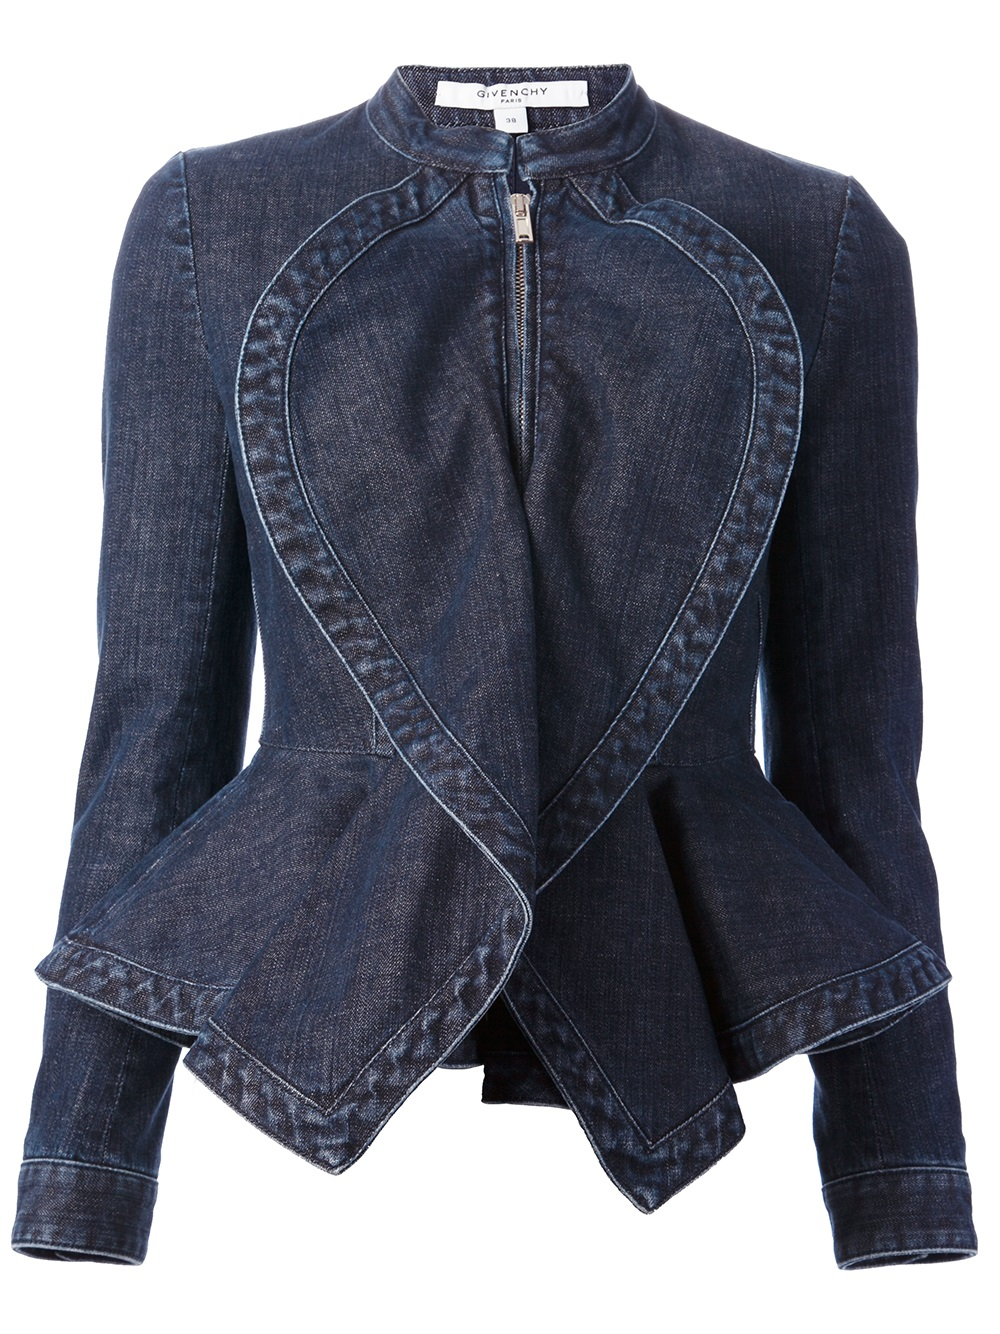 Find great deals on Men's Jean Jackets at Kohl's today! Sponsored Links Outside companies pay to advertise via these links when specific phrases and words are searched.